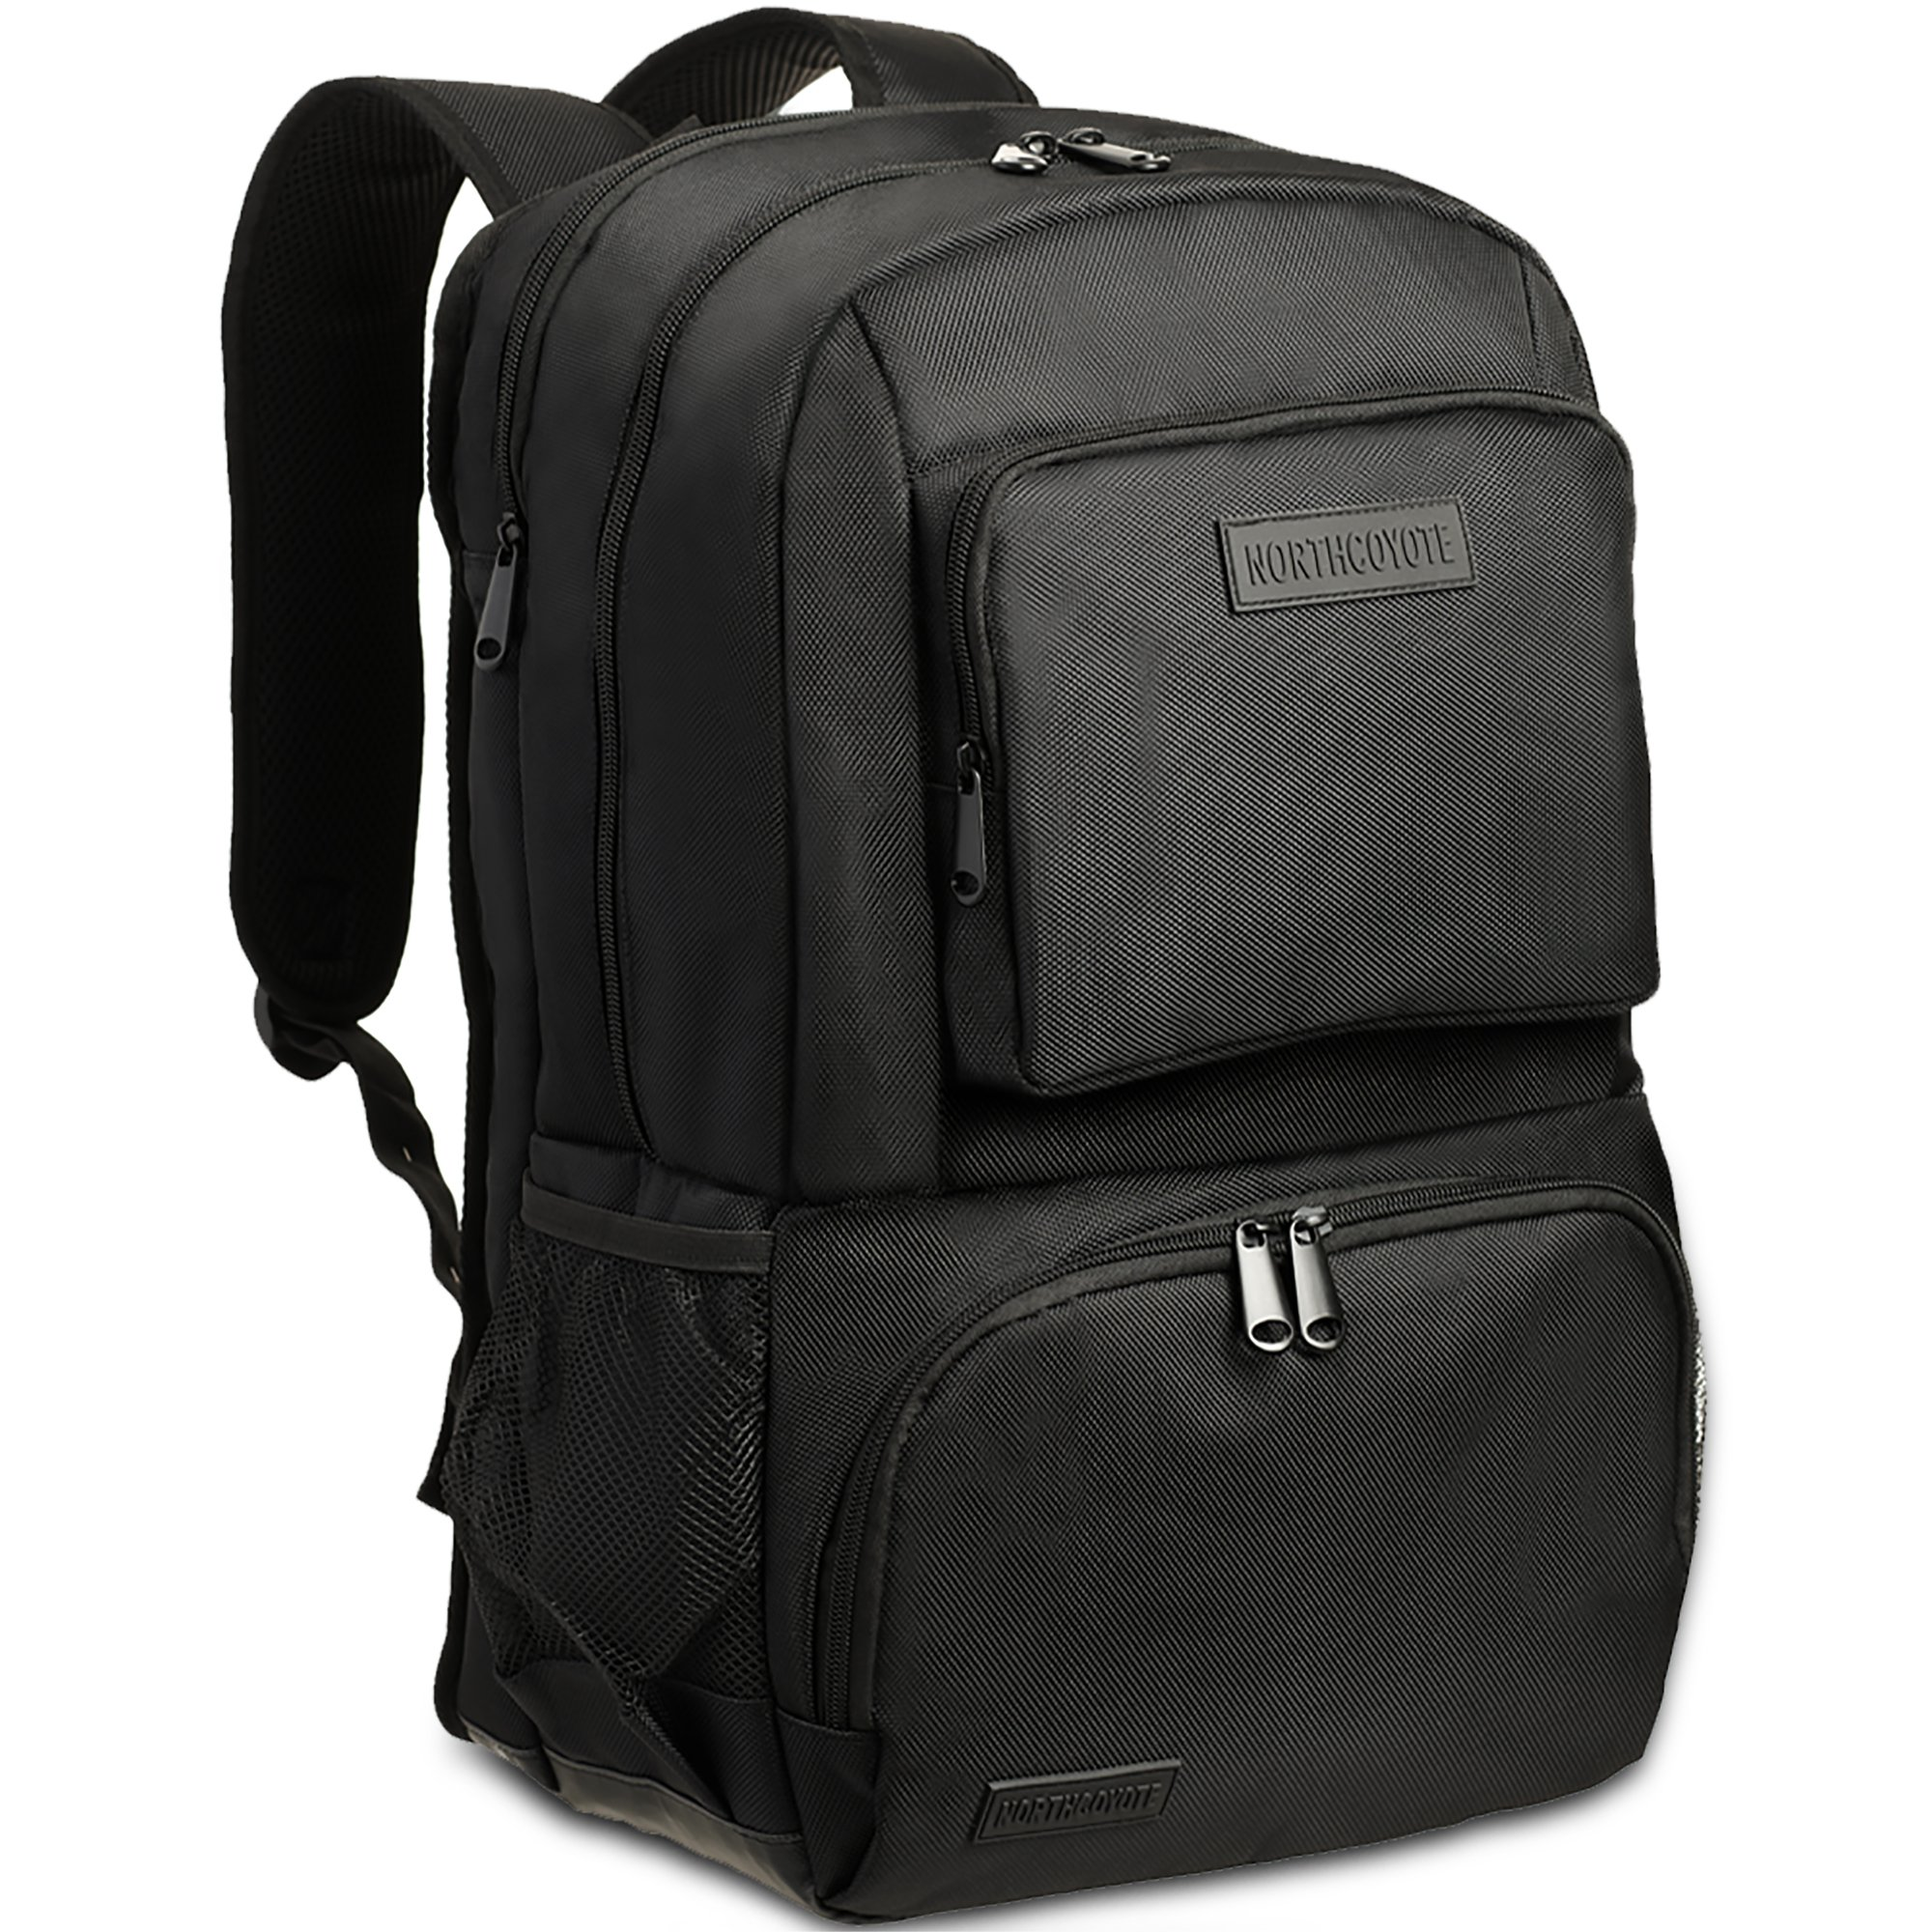 Insulated Backpack Cooler Backpack Insulated Waterproof - Ice Chest Backpack Coolers Insulated Hiking Back Pack Cooler Bag - Picnic Lunch Backpack with Cooler Compartment - Cooler Backpacks